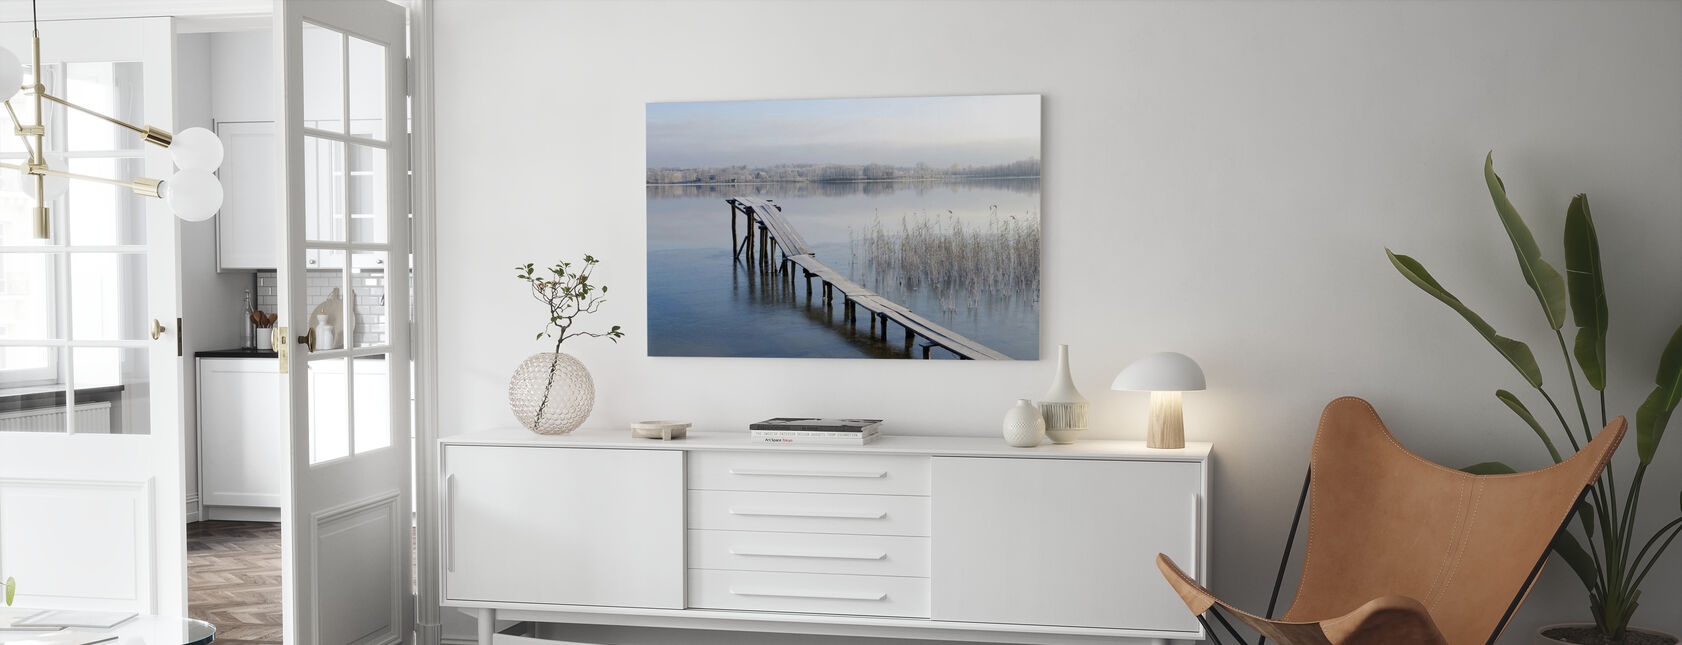 Attributes of Winter - Canvas print - Living Room